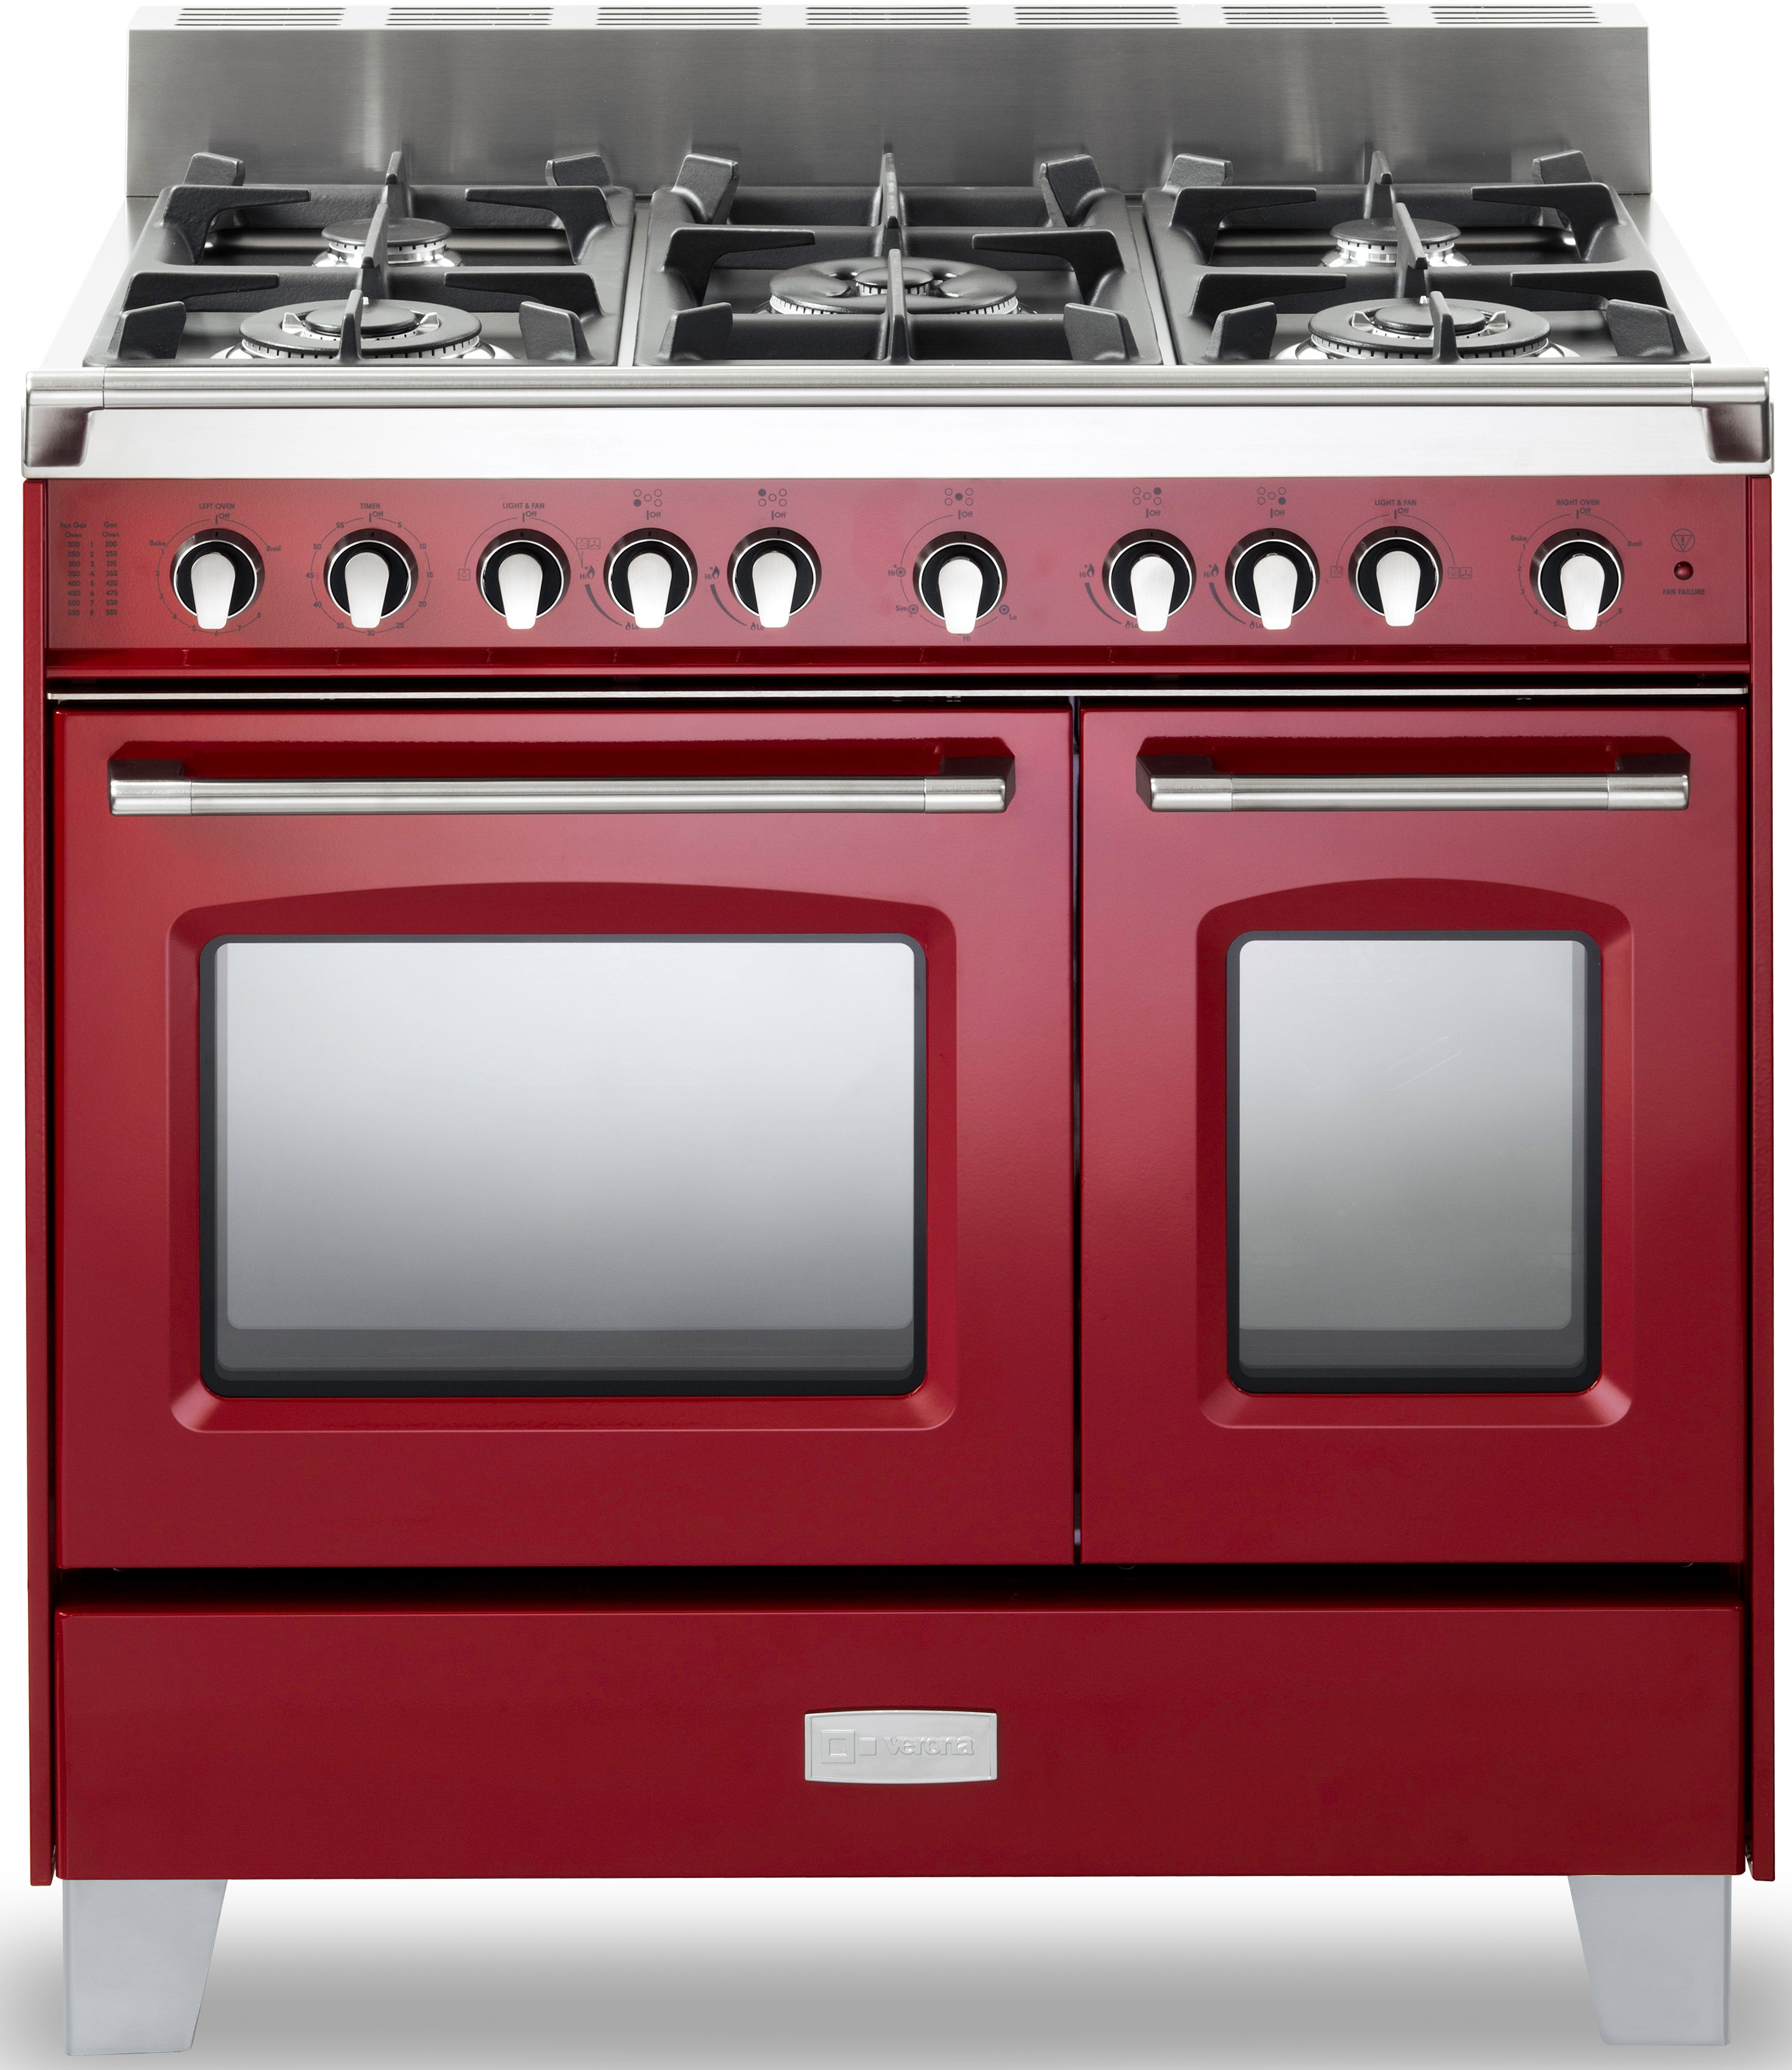 Verona Classic Series VCLFSGG365DR 36 Inch Pro-Style Gas Range with 4 cu. ft. Total Oven Capacity, 5 Sealed Burners, Convection Main Oven, Infrared Broiler, Bell Timer, Glide Rack and Storage Drawer: